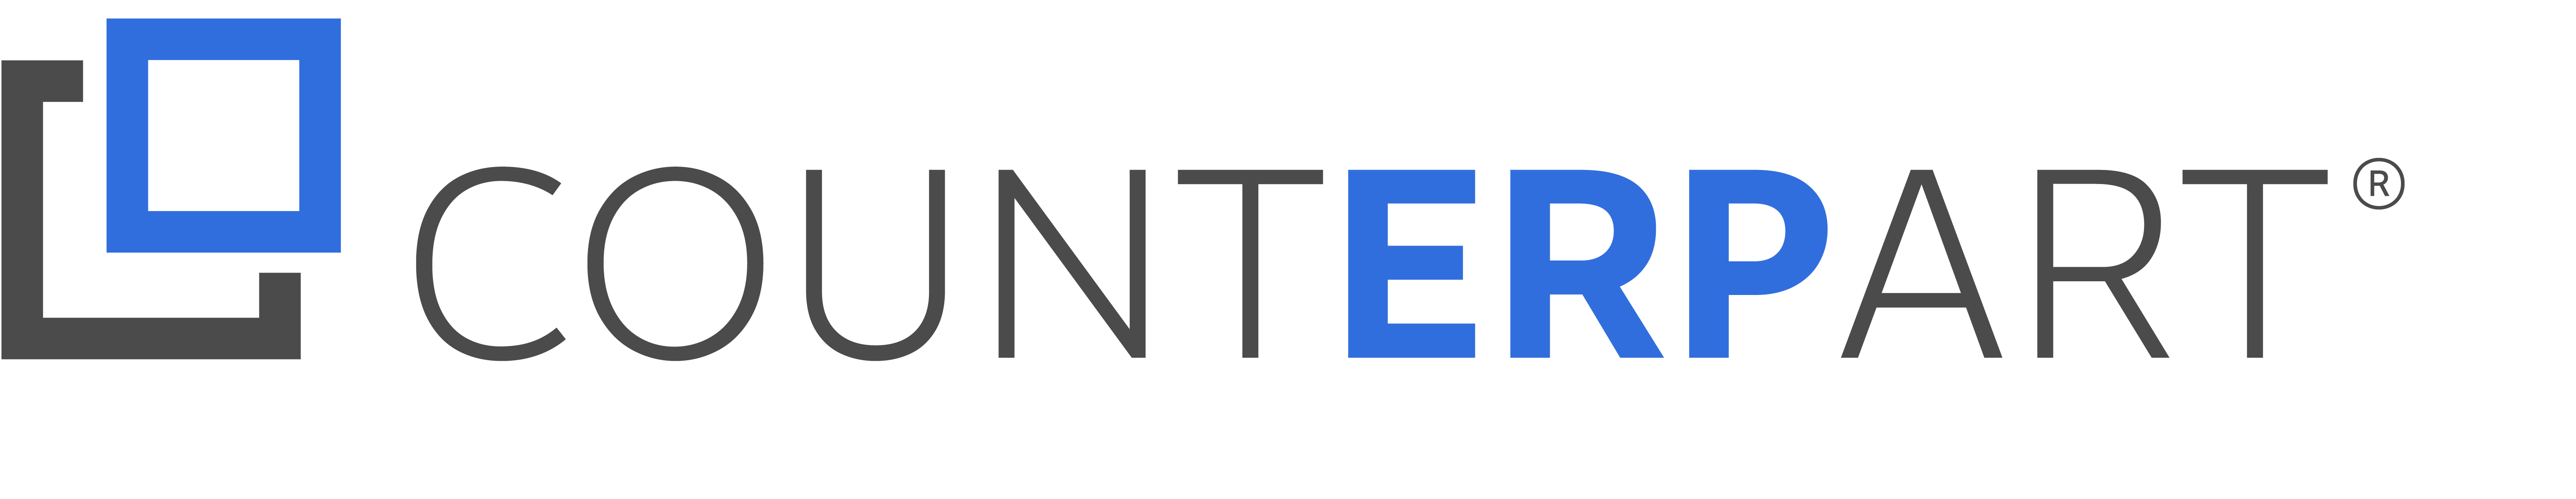 Industrial Talk Podcast Hosts Andrew Schutte of COUNTERPART ETO About Engineering Efficiency